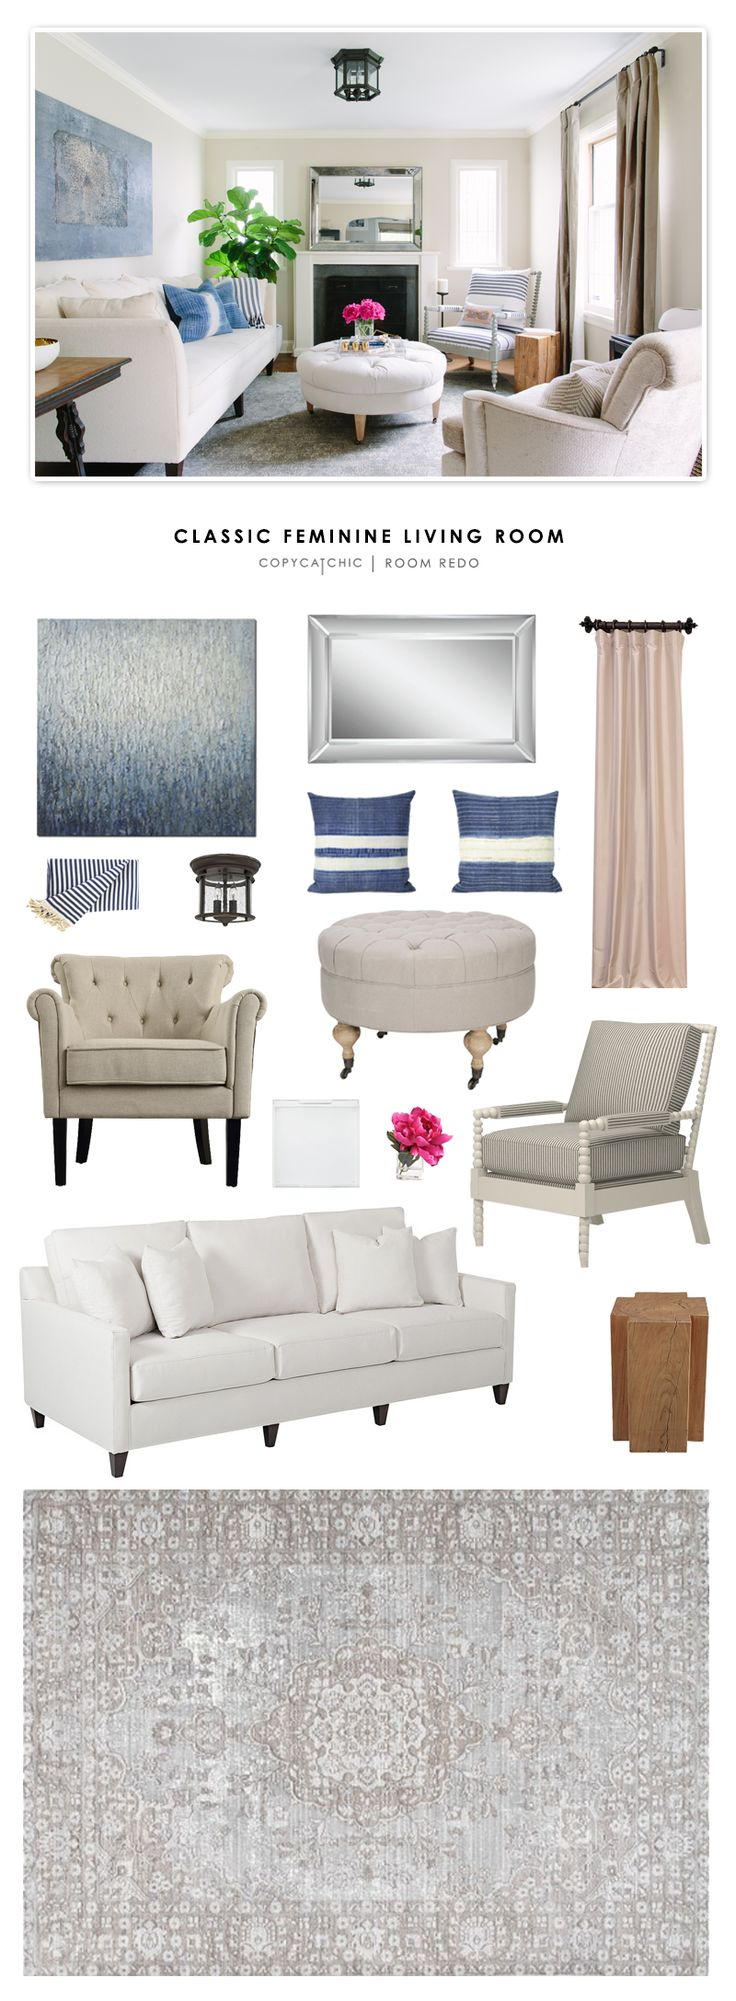 25 best ideas about budget living rooms on pinterest - How to redo a living room under 100 ...